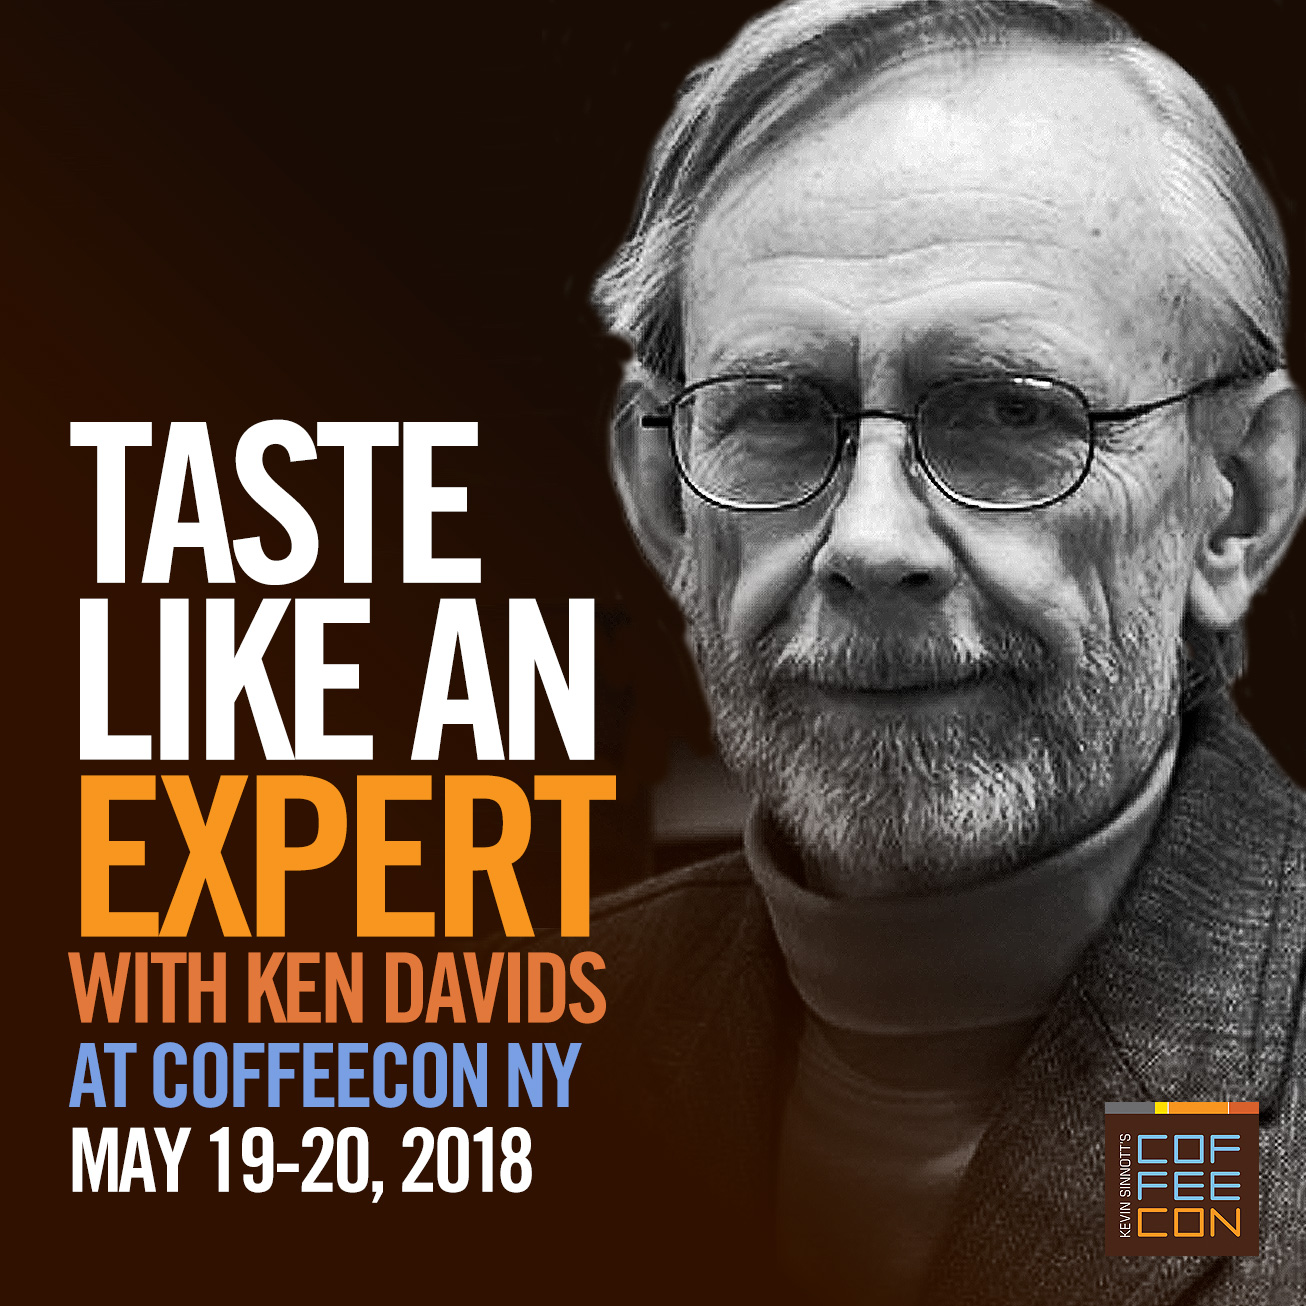 Taste Like An Expert with Kenneth Davids